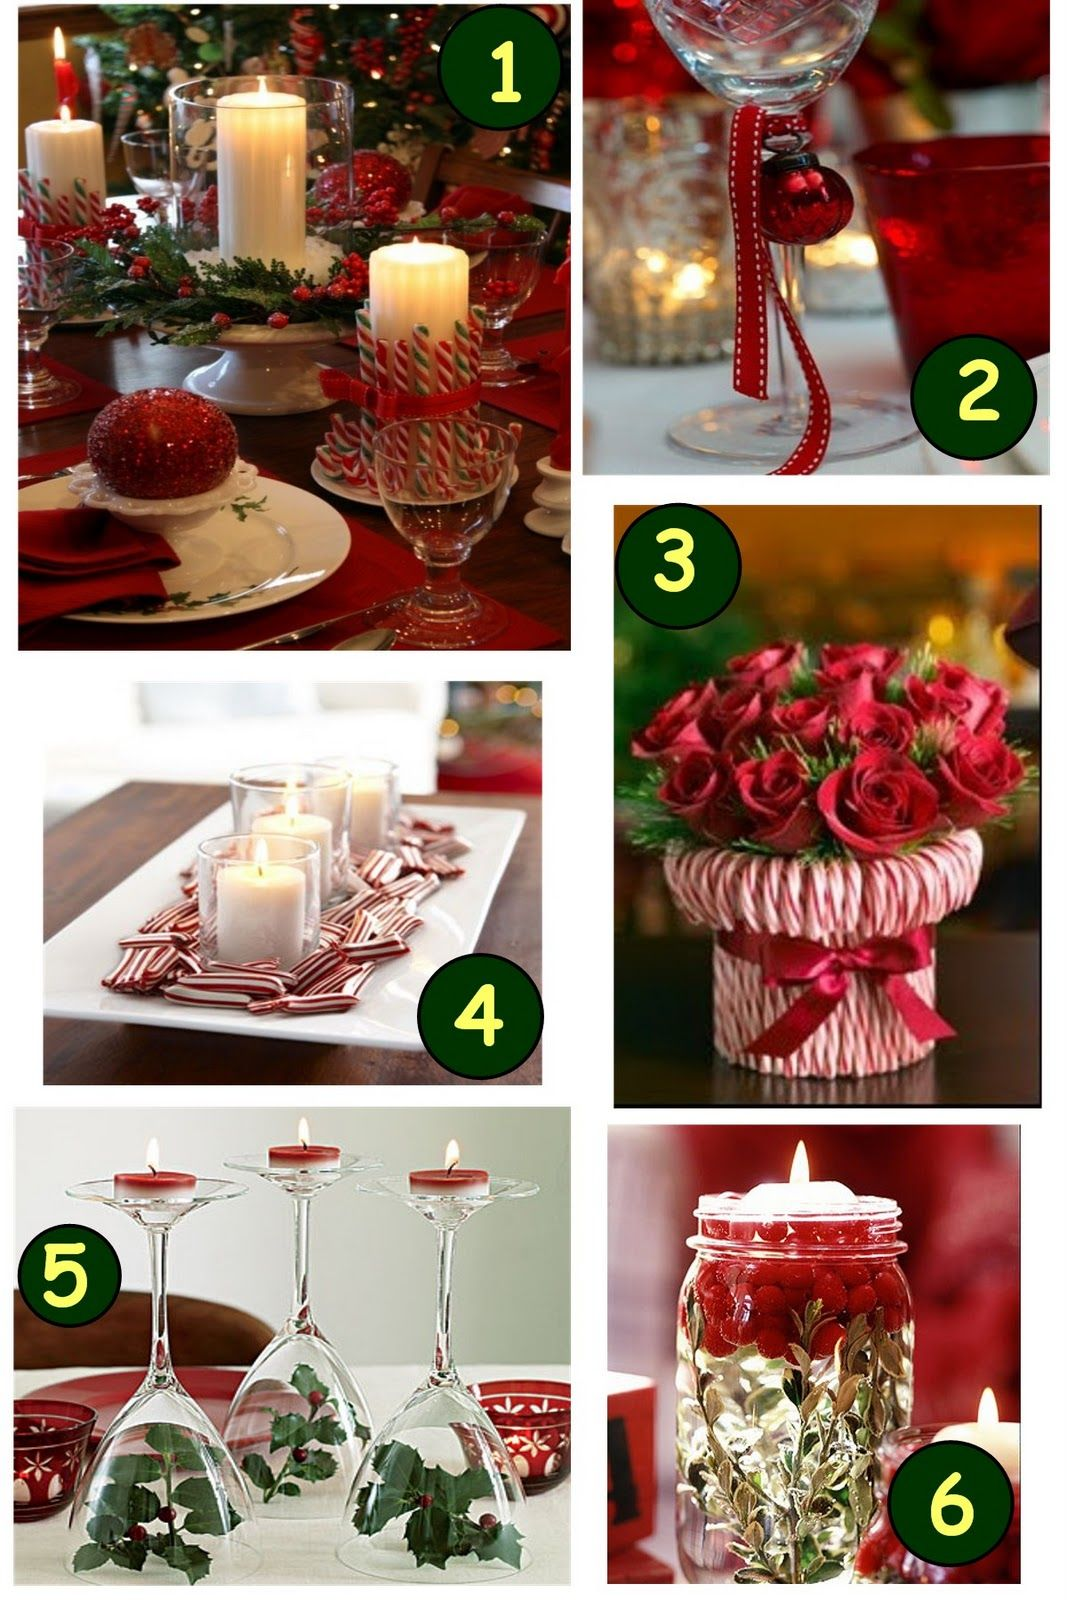 Christmas party table decorations are some great christmas decor ideas for your